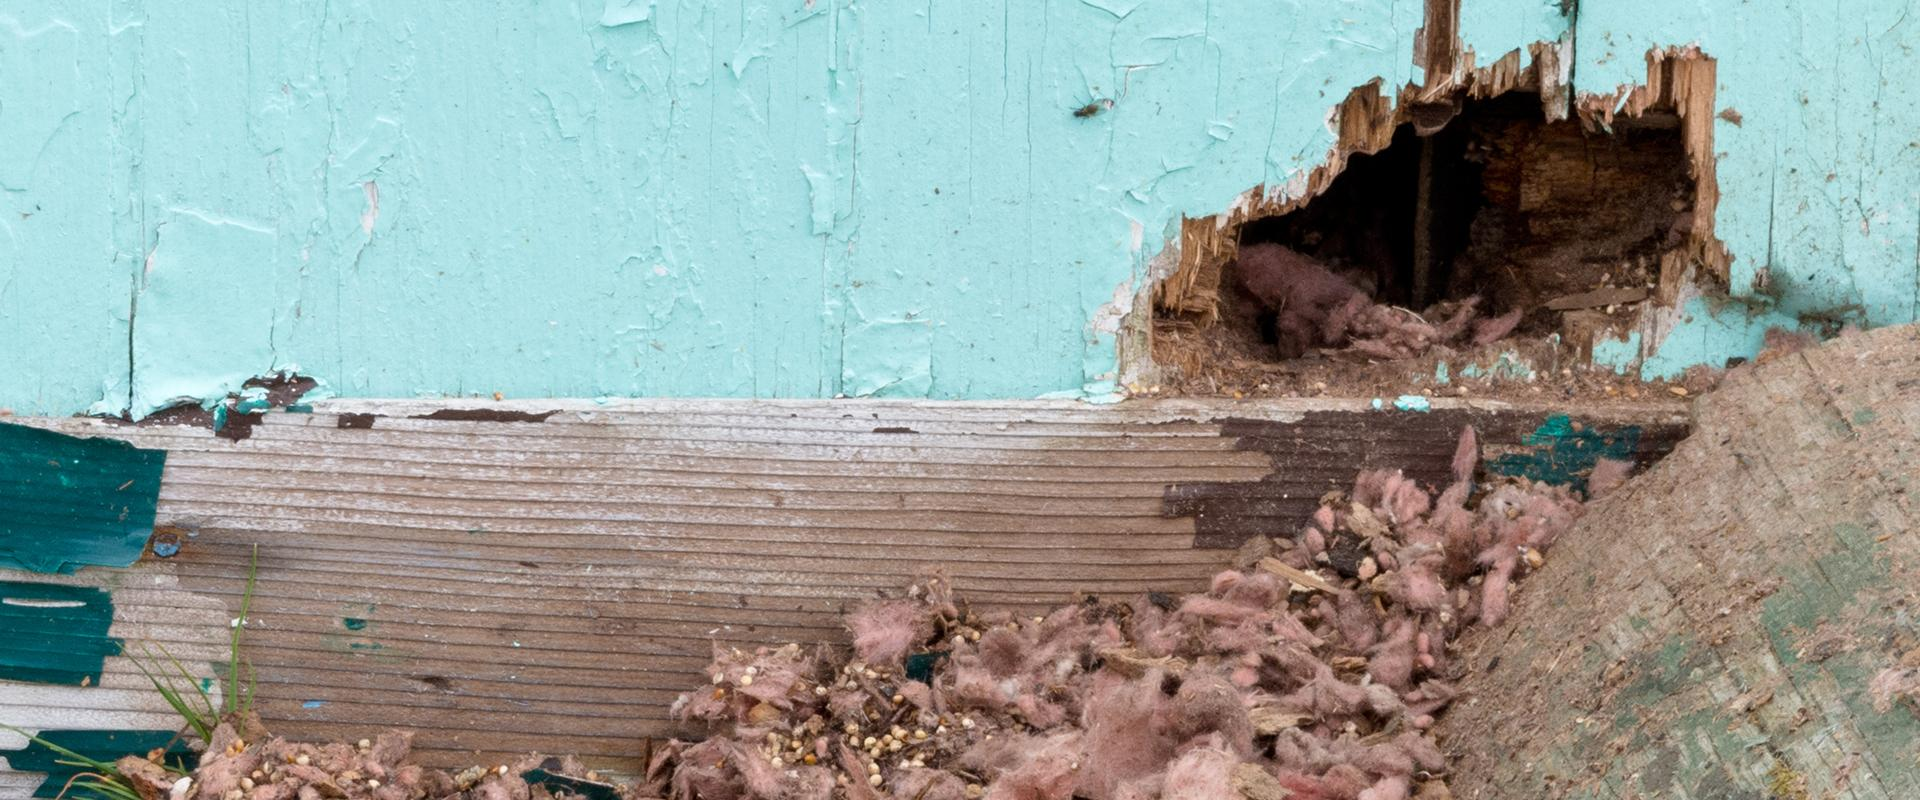 rodent hole in wall